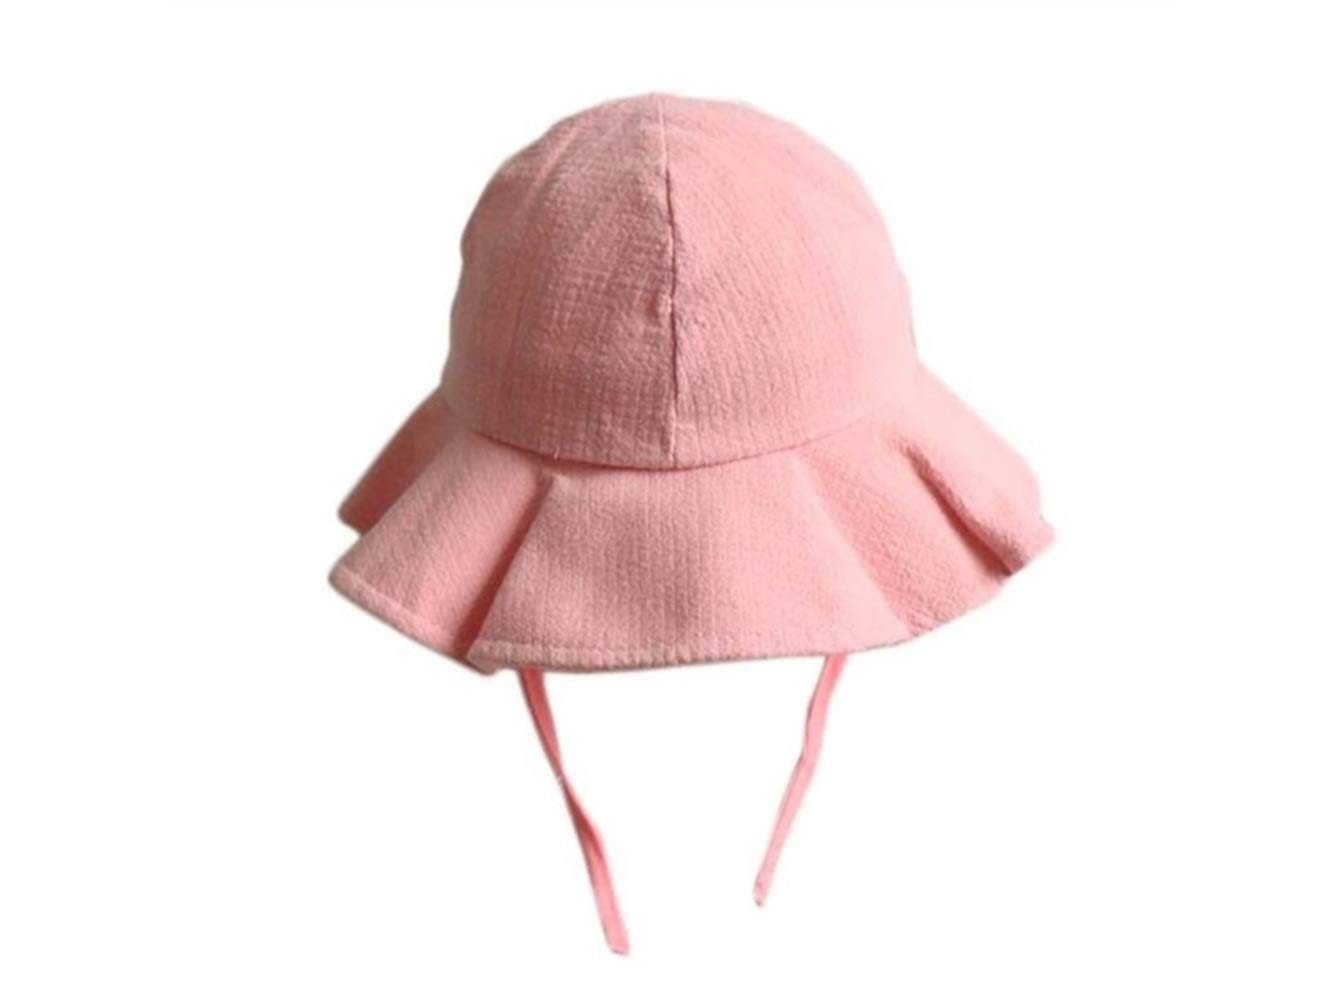 Infant Cap Lovely Ruffle Girls Sun Protection Hat Baby Packable Soft Cotton Hat Sun Visor for 0-3 Years Old(Pink) Baby Gift (Color : Pink, Size : 50cm)